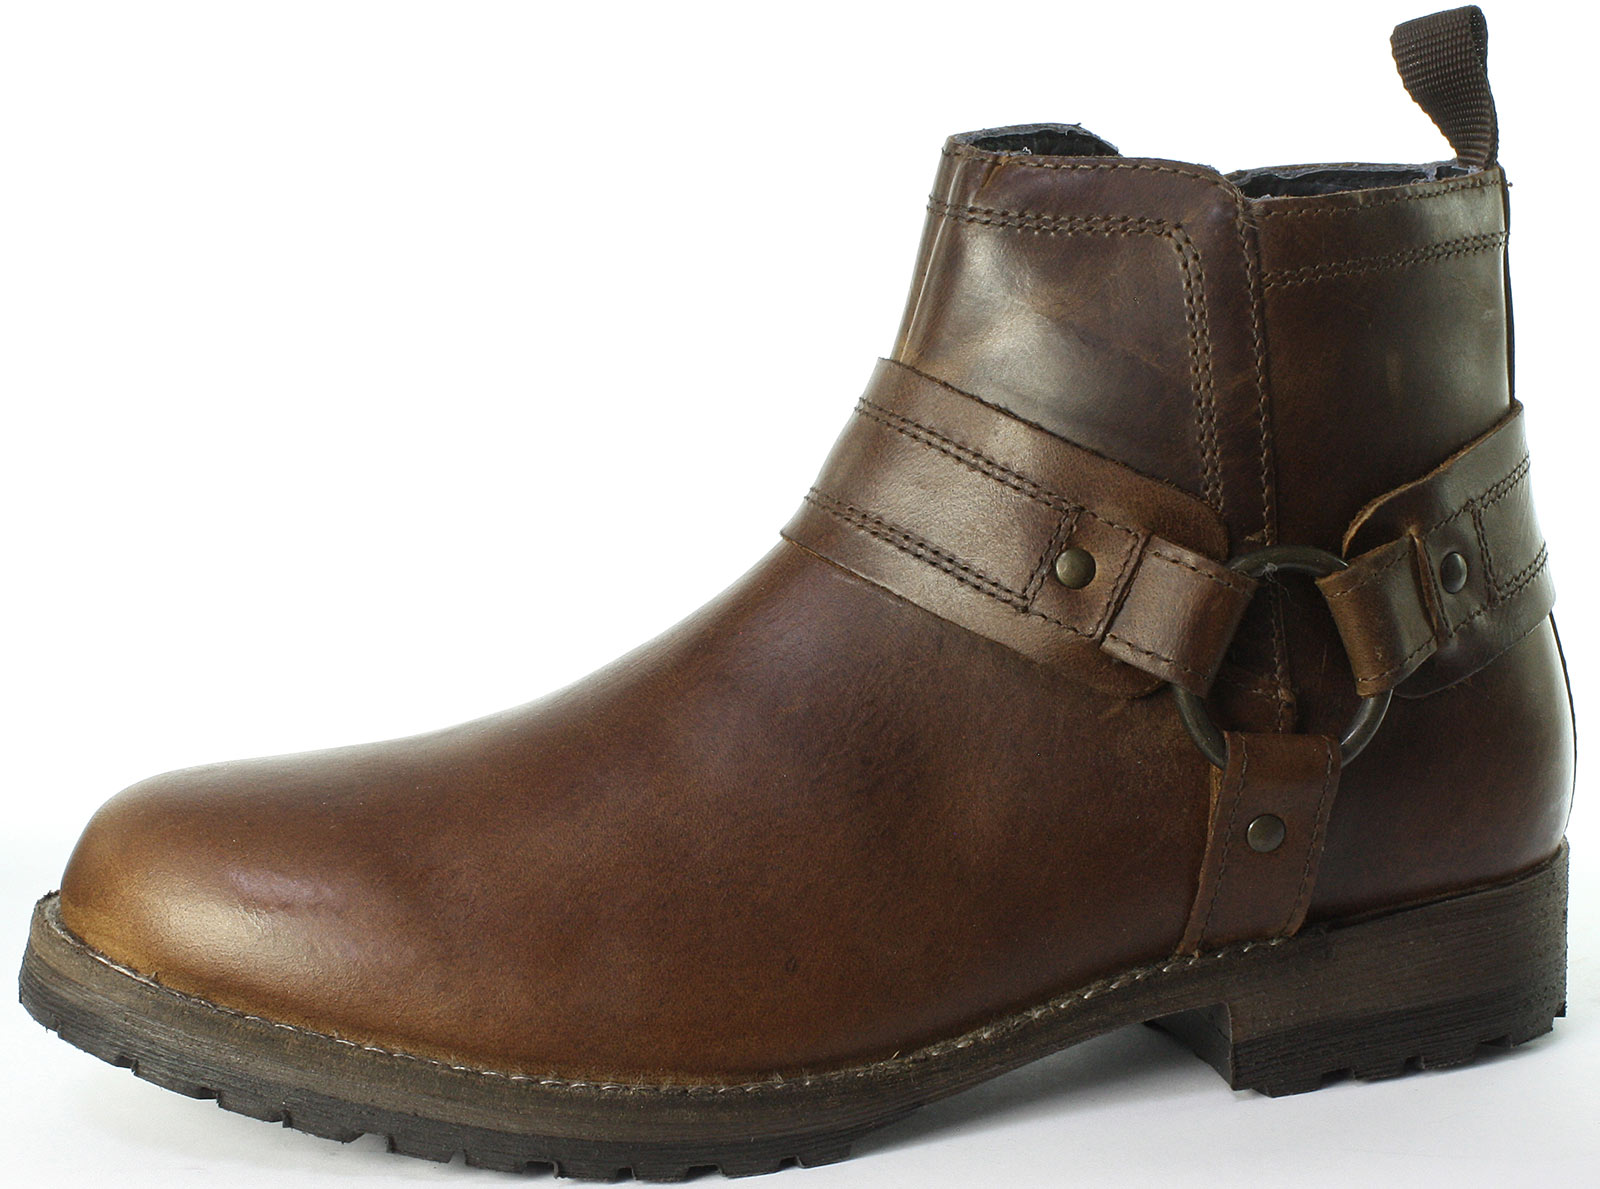 d1f4181982b8 Red Tape Bradley Men s Tan Leather Zip-up Worker BOOTS UK 10 for ...